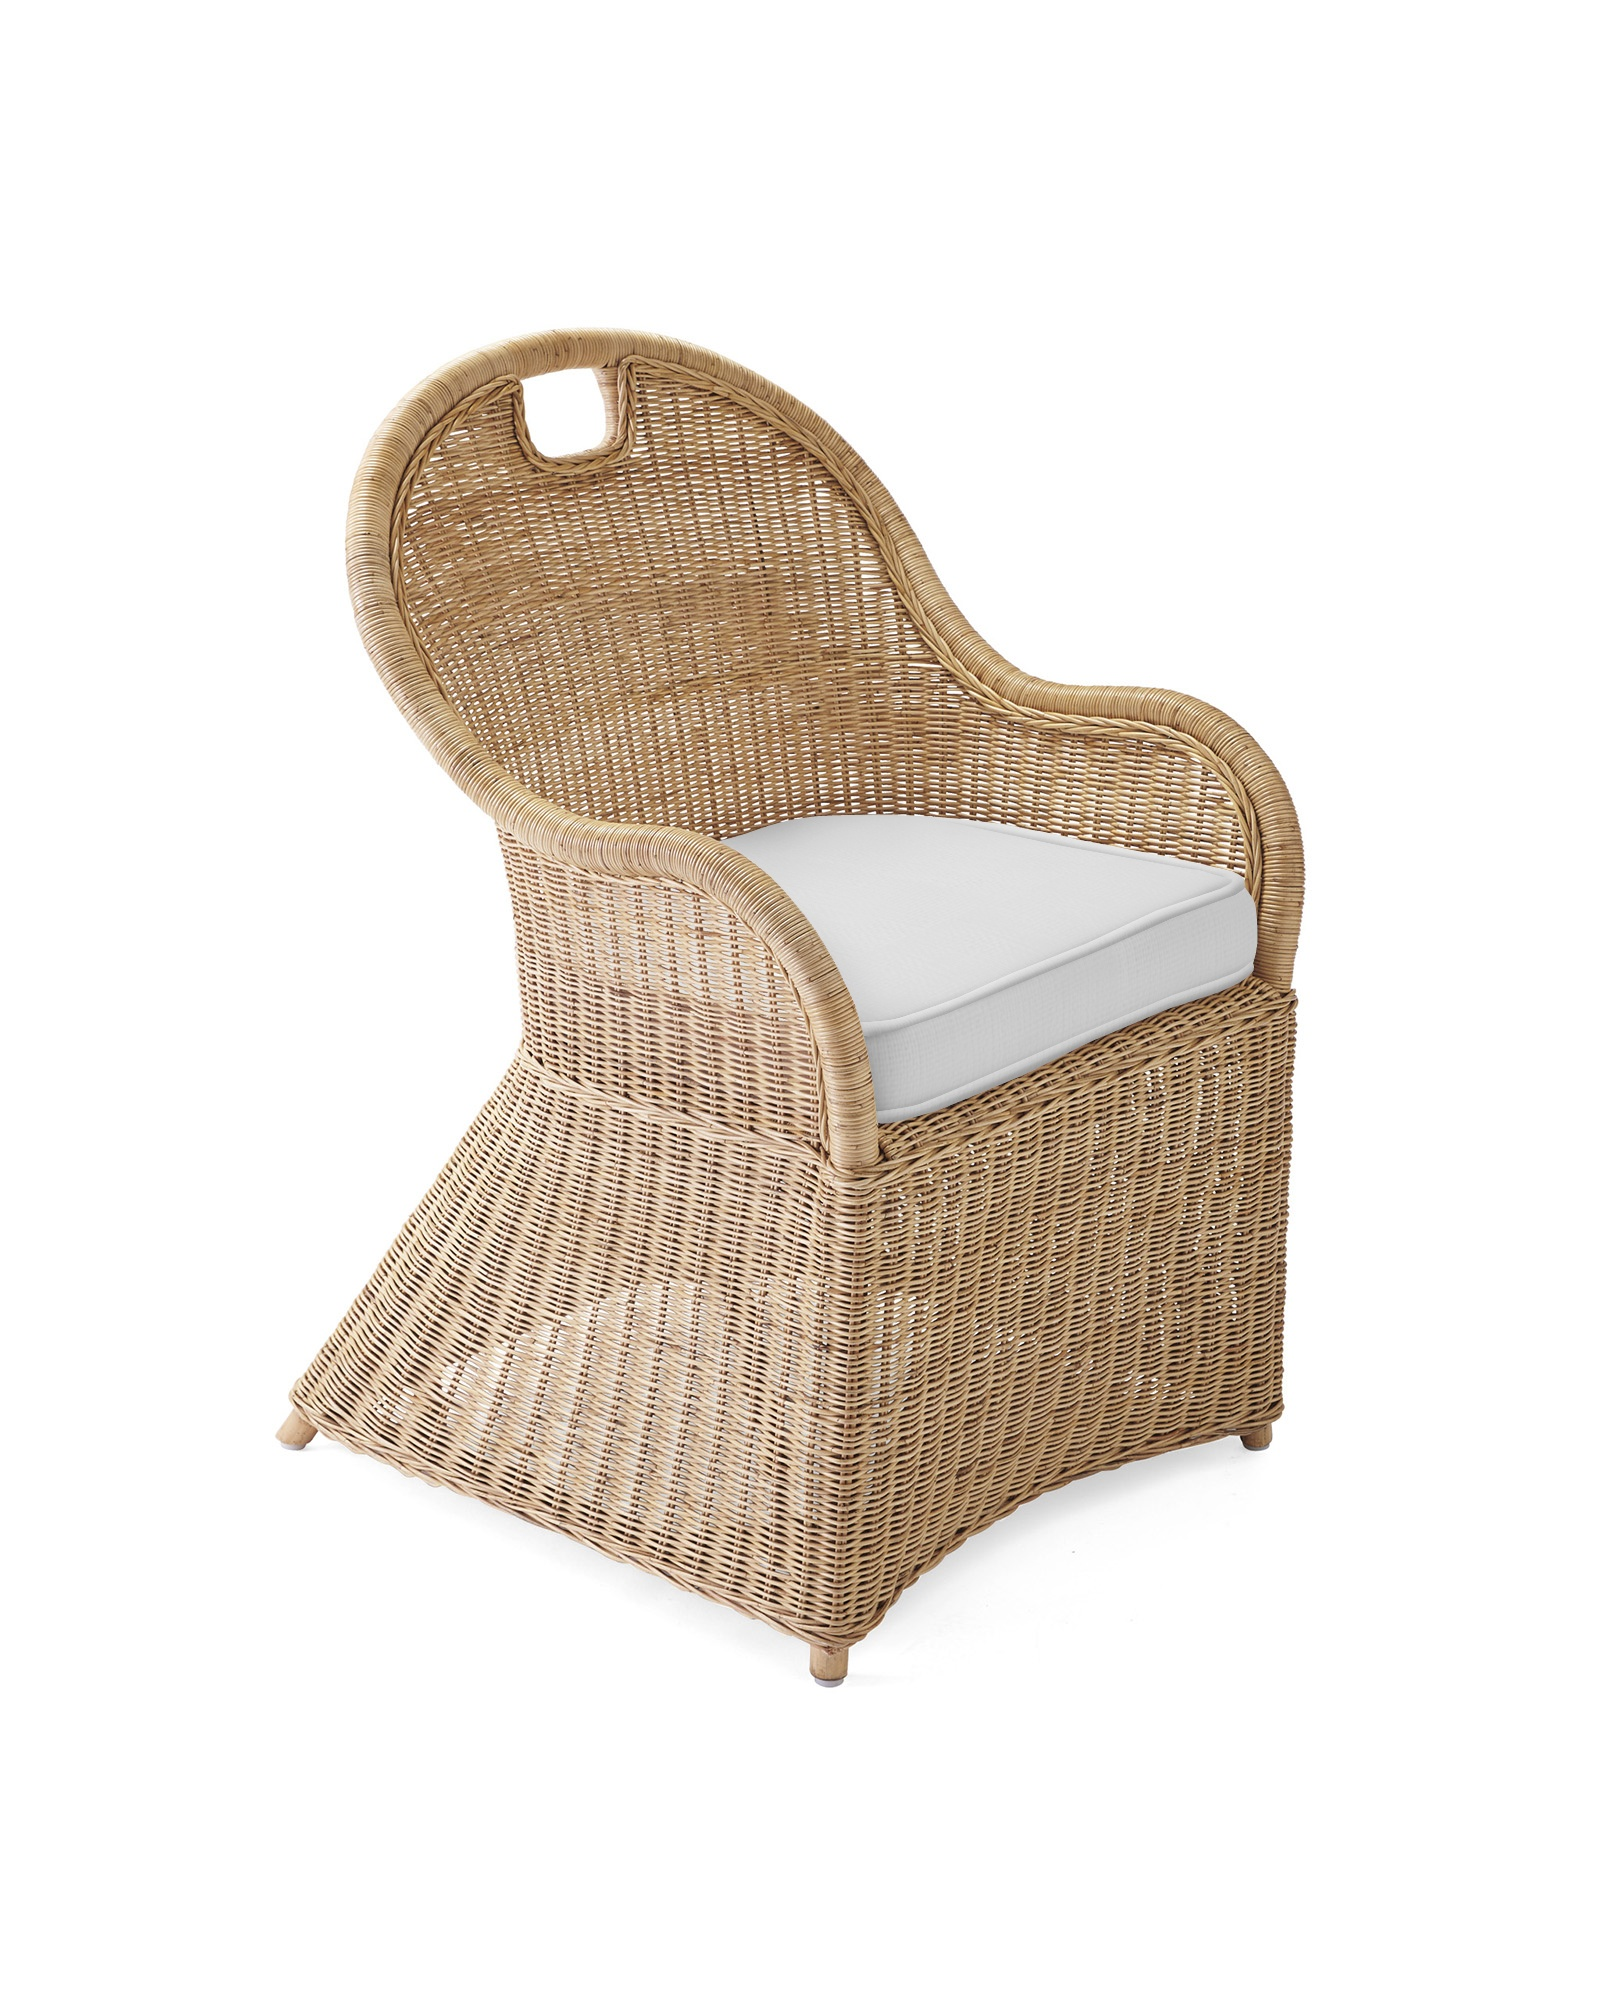 Cushion Cover for Shore Dining Chair, Perennials Basketweave White